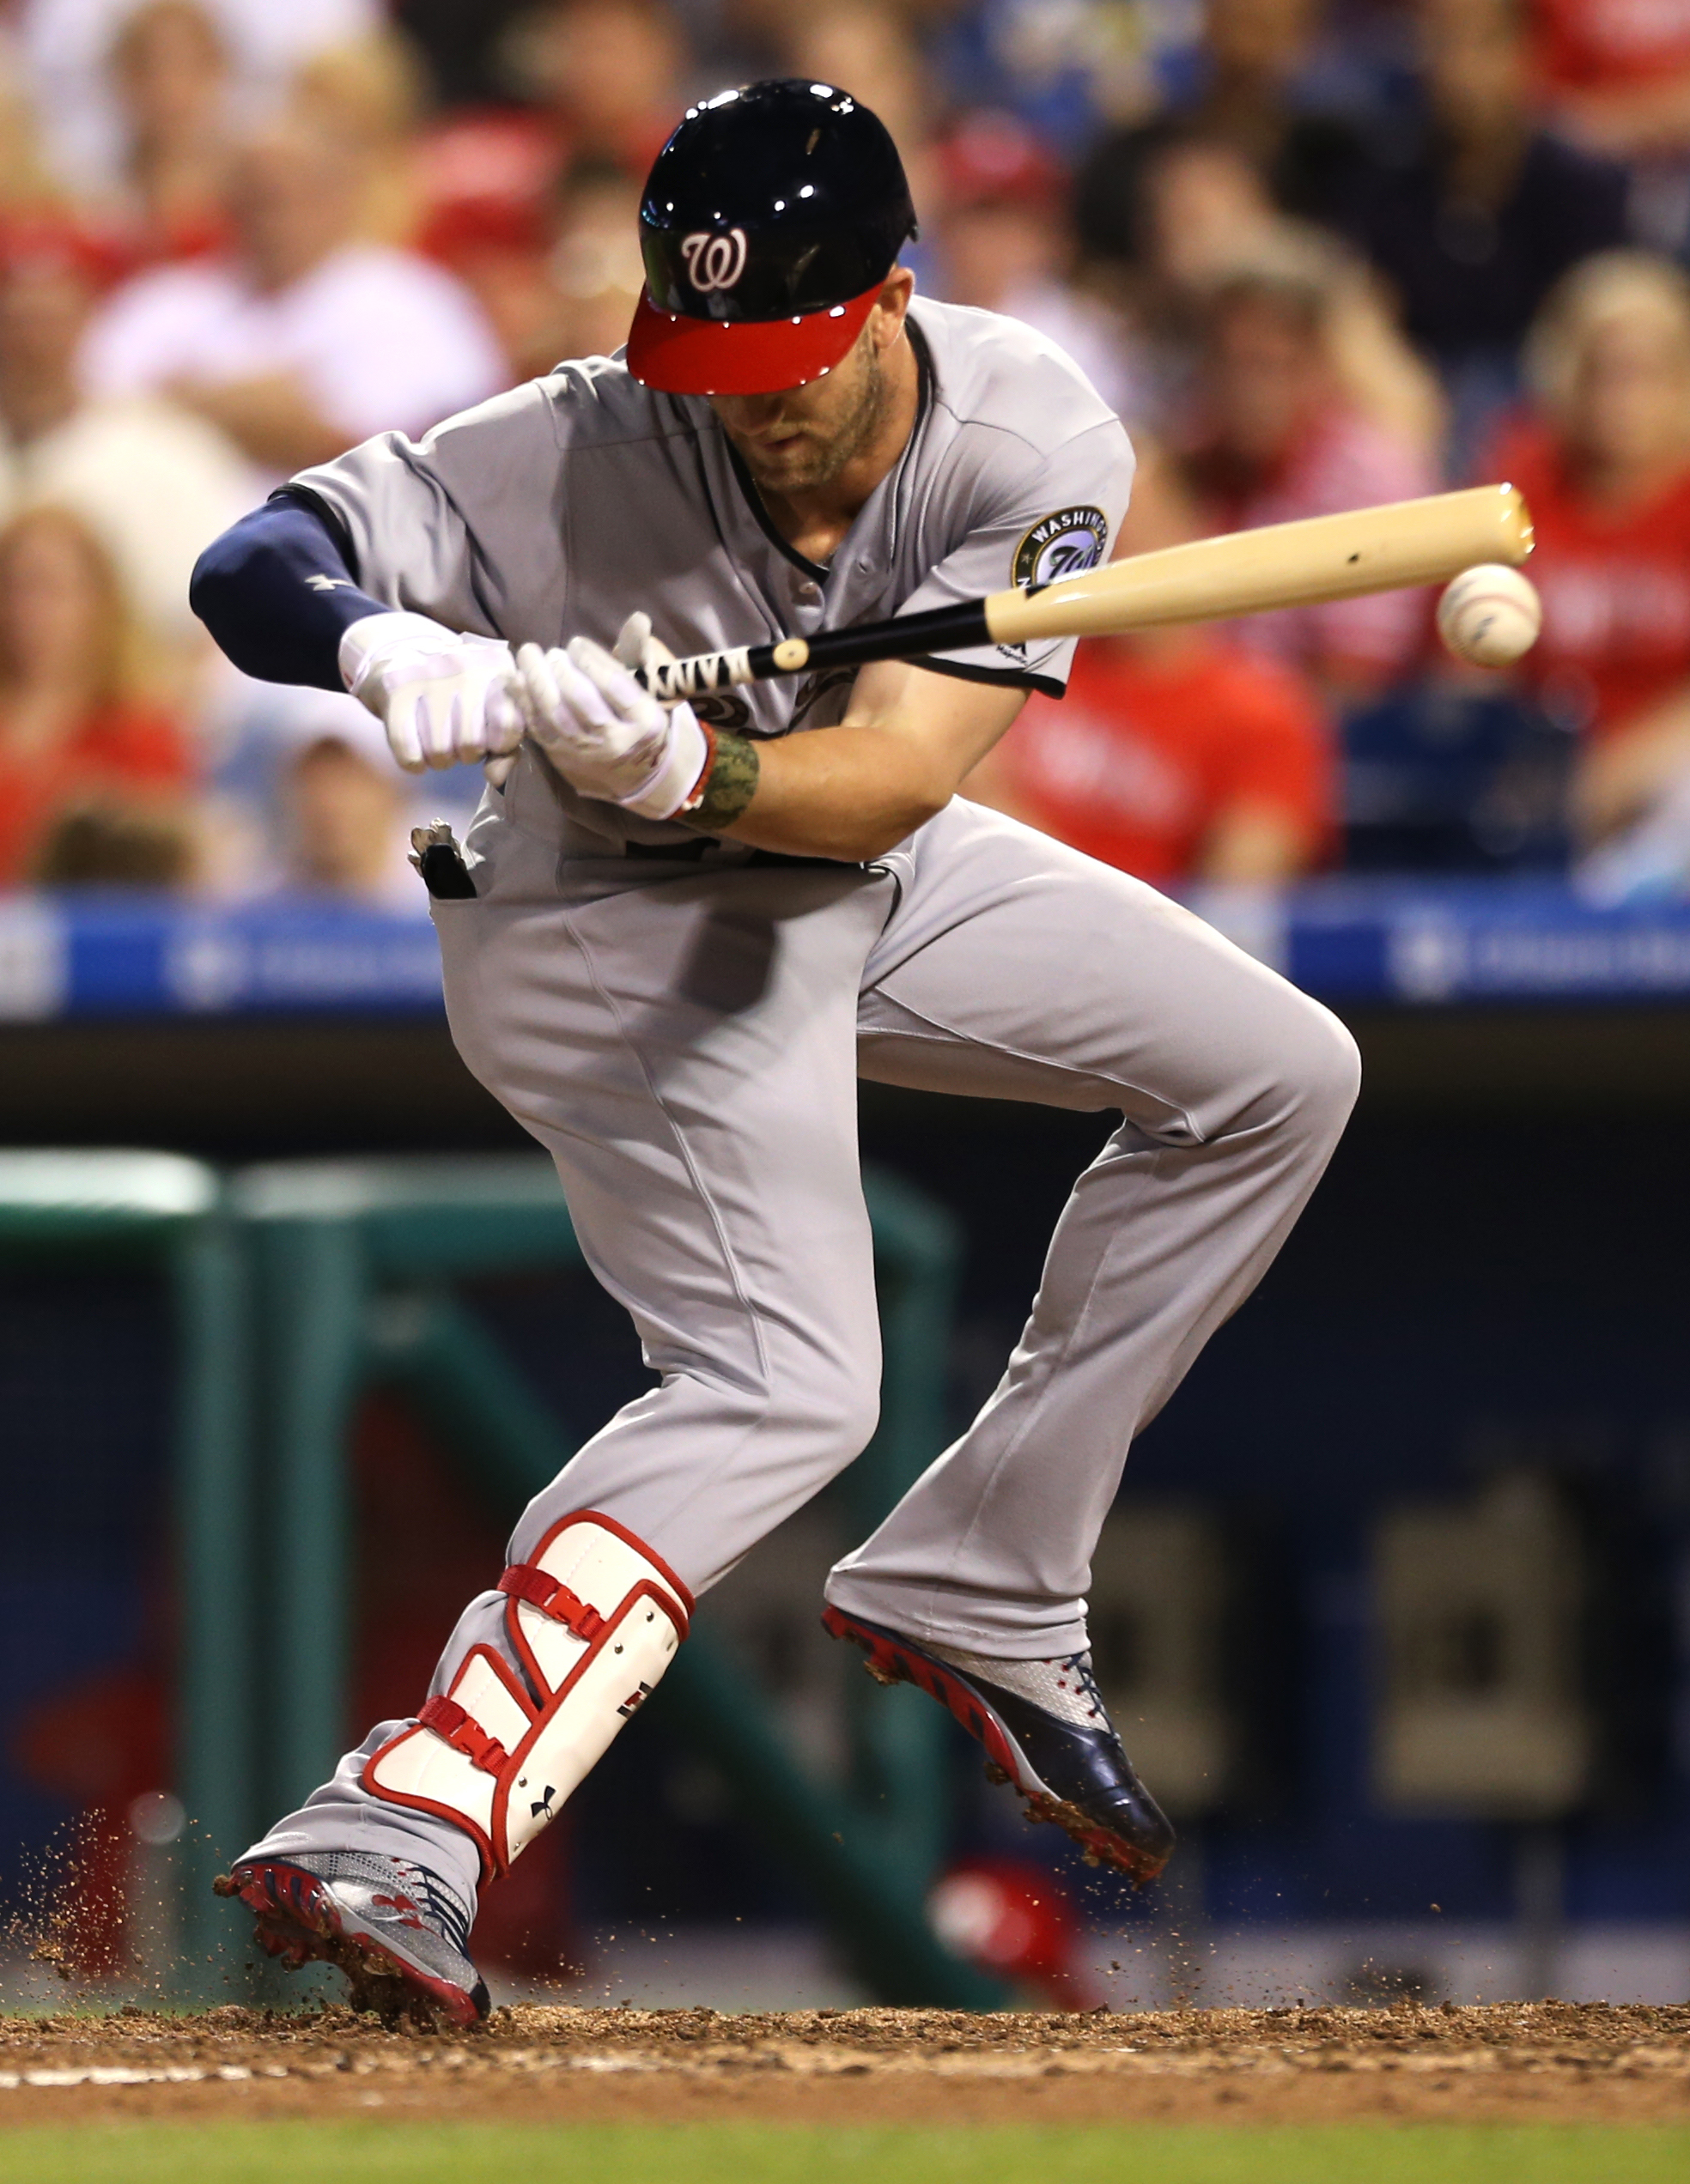 Washington Nationals' Bryce Harper (34) is hit by a pitch from Philadelphia Phillies starting pitcher Jeremy Hellickson in the seventh inning of a baseball game, Monday, May 30, 2016, in Philadelphia. The Nationals won 4-3. (AP Photo/Laurence Kesterson)